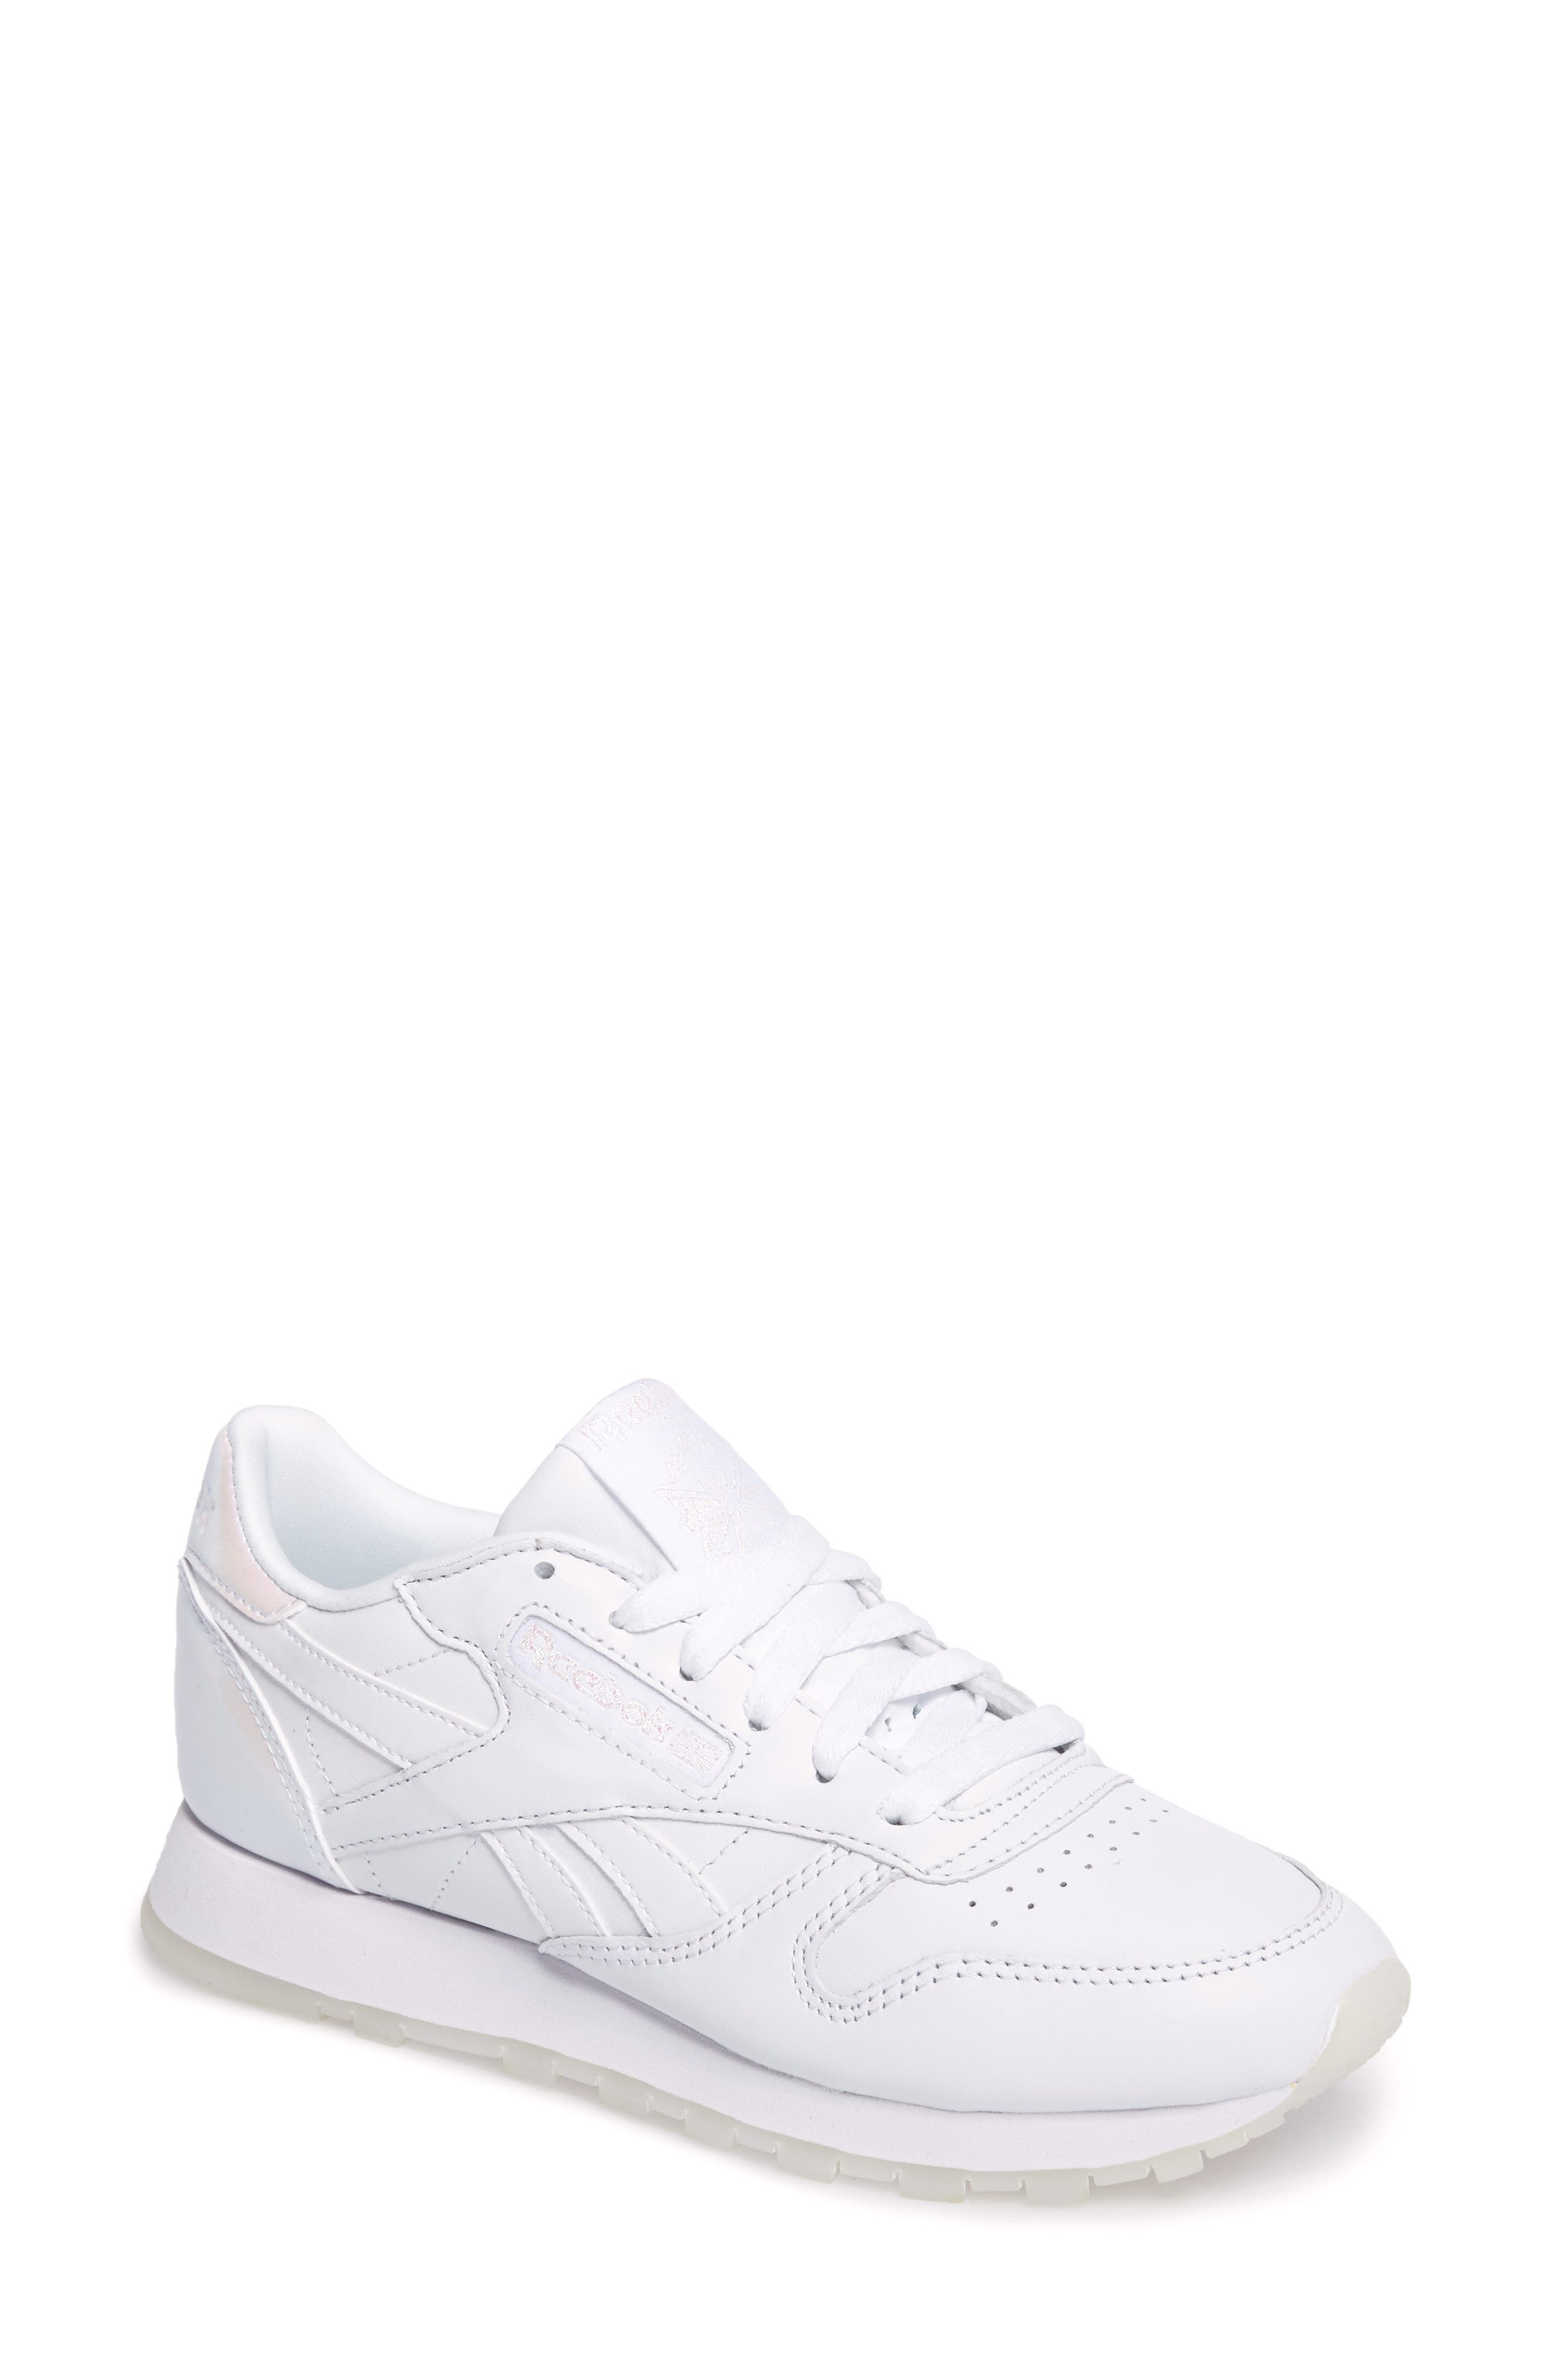 Classic Leather Sneaker,                         Main,                         color, White/ White/ Ice Pearl